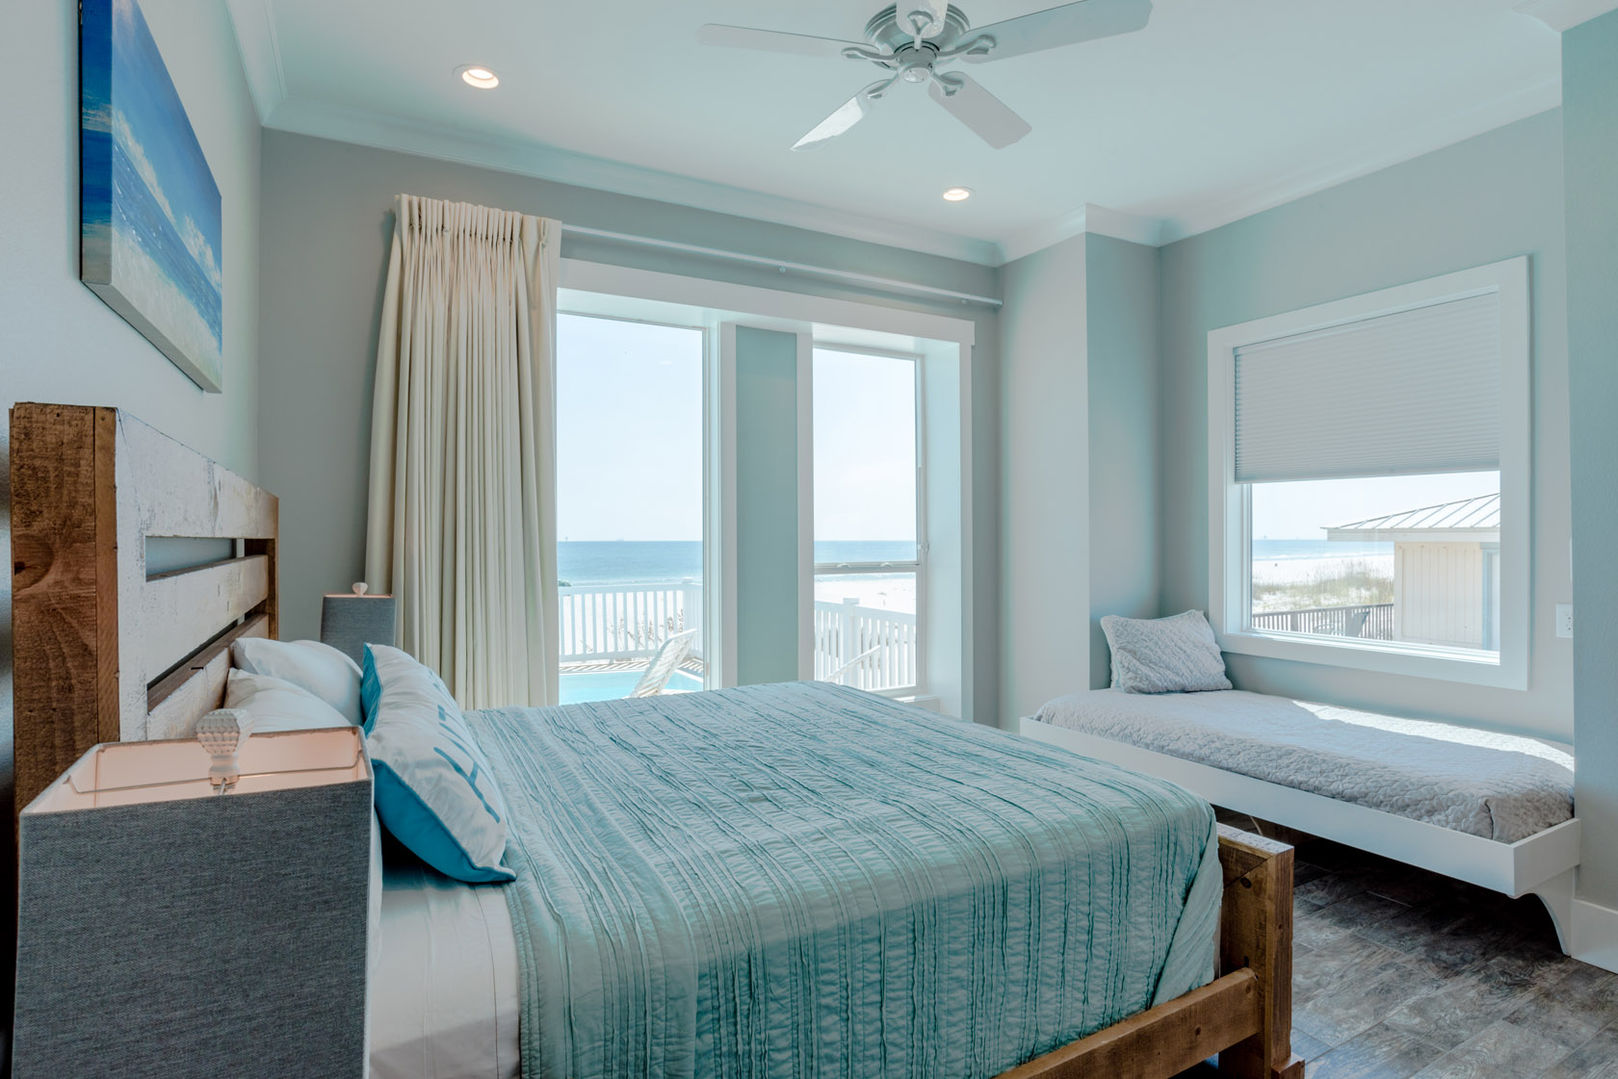 Bedroom 1 with Gulf Views and Private Deck Access